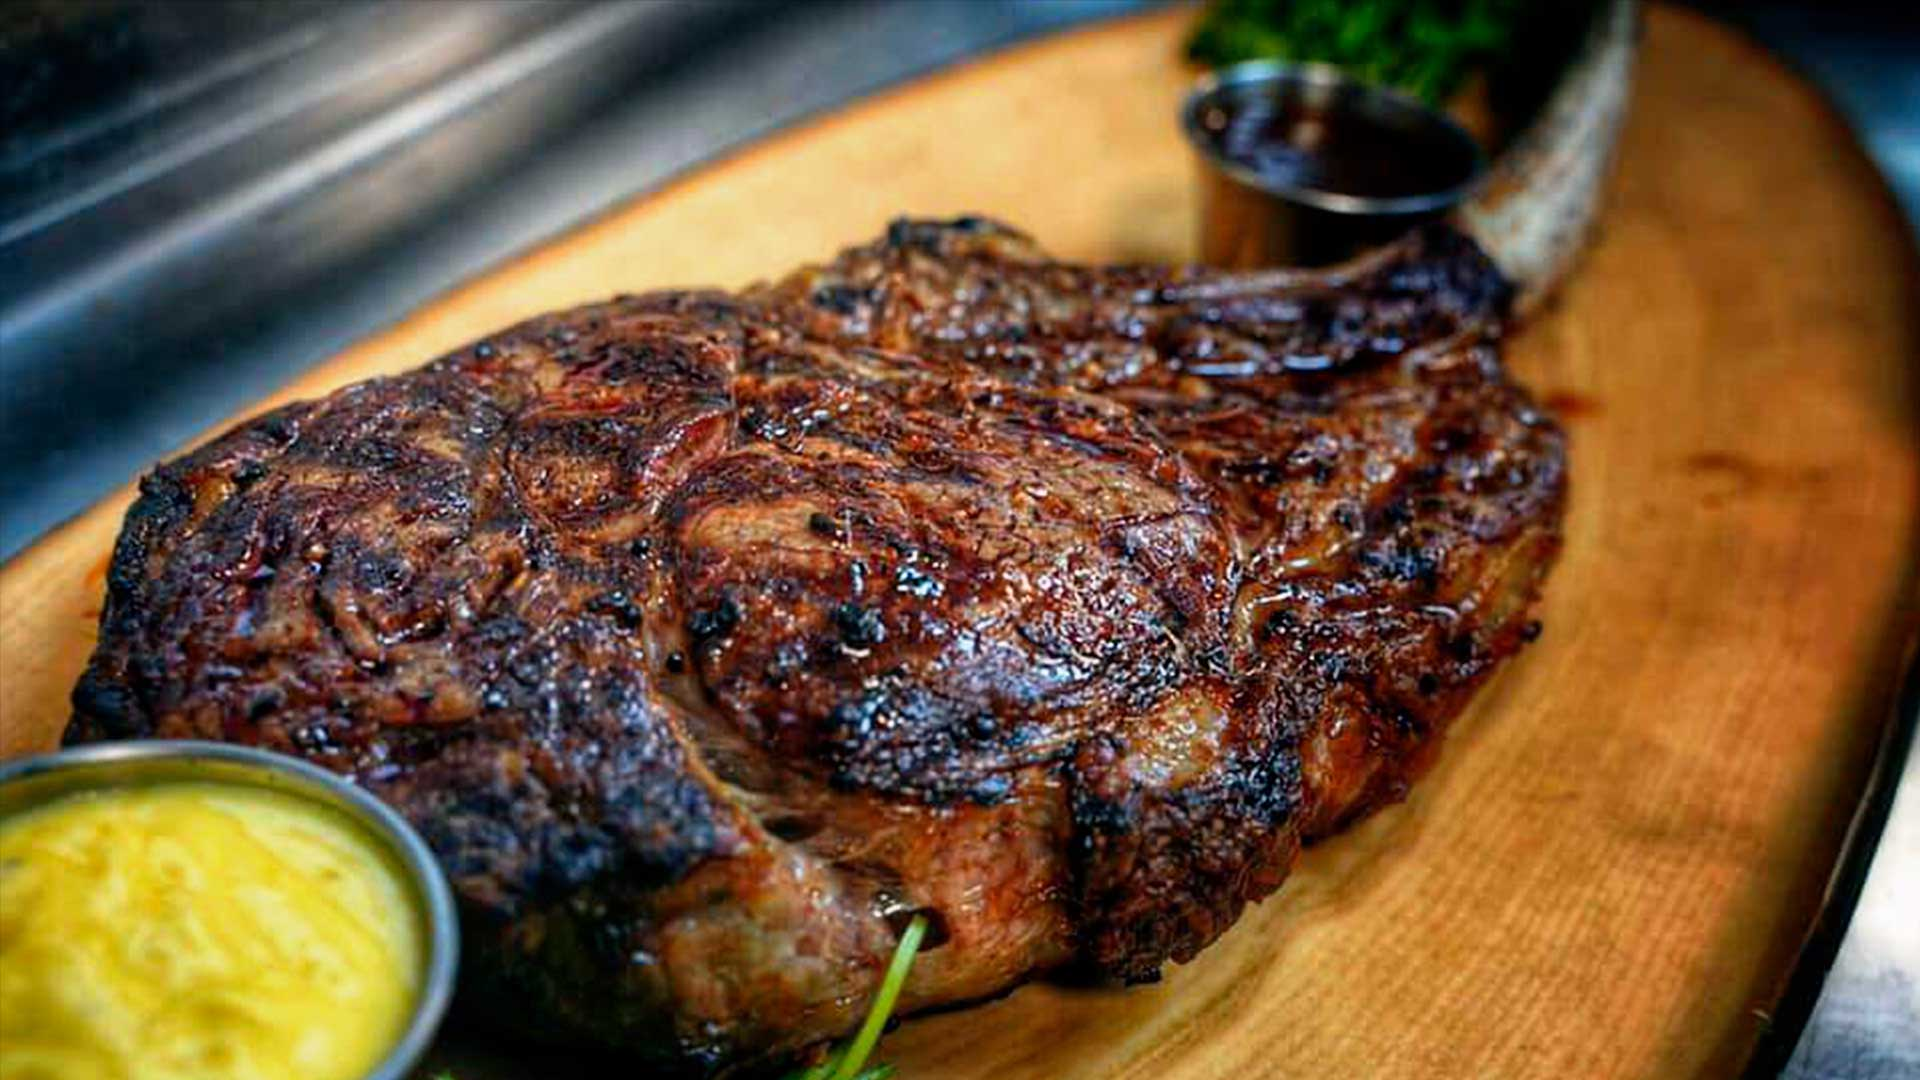 Image of juicy 50 oz Tomahawk Steak available at The Men's Club every Thursday